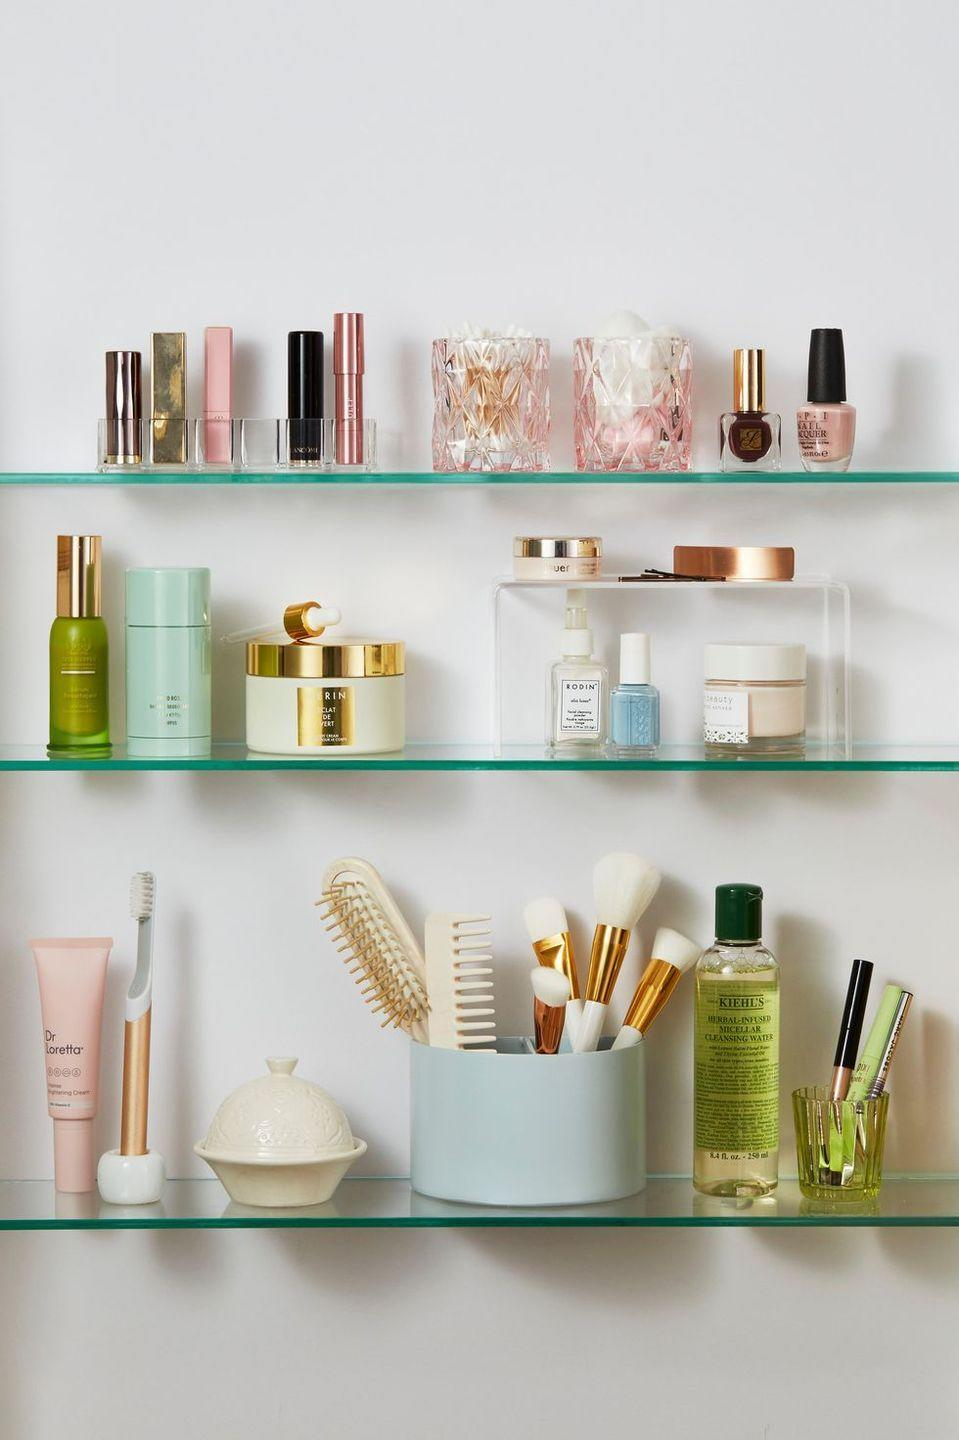 "<p>Maintain orderly bathroom shelves by placing makeup brushes, hair tools, and smaller items in containers and purging any unwanted products. </p><p><strong>RELATED</strong>: <a href=""https://www.goodhousekeeping.com/home/organizing/g25922638/bathroom-shelf-ideas/"" rel=""nofollow noopener"" target=""_blank"" data-ylk=""slk:12 Smart Bathroom Shelf Ideas to Keep Your Toiletries Under Control"" class=""link rapid-noclick-resp"">12 Smart Bathroom Shelf Ideas to Keep Your Toiletries Under Control</a></p>"